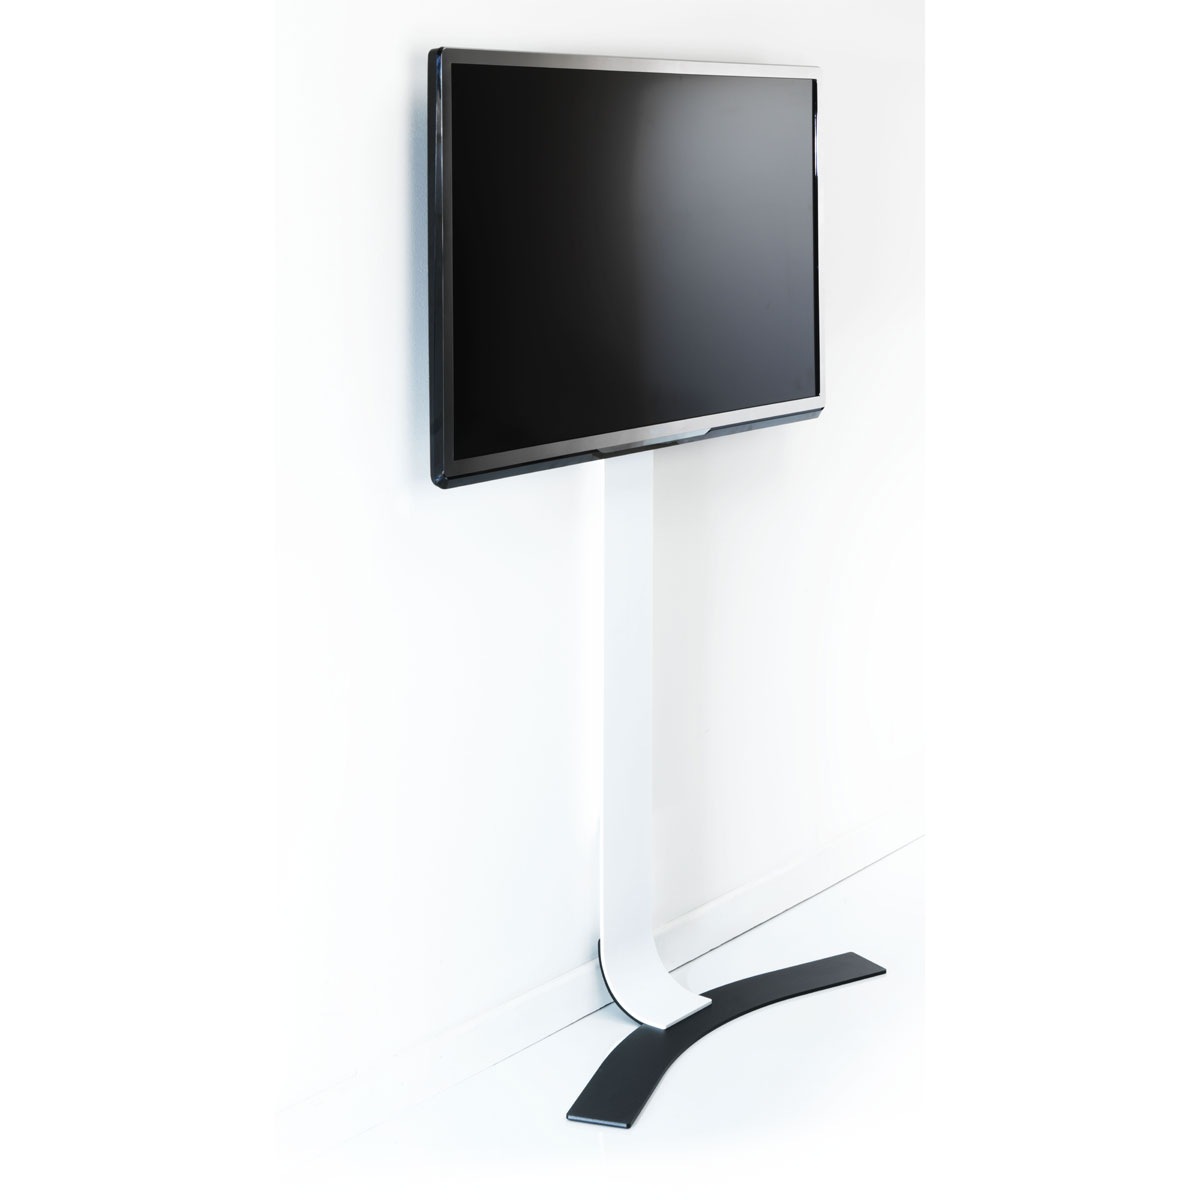 Erard standit 600 support mural tv erard group sur for Meuble tv ecran plat suspendu